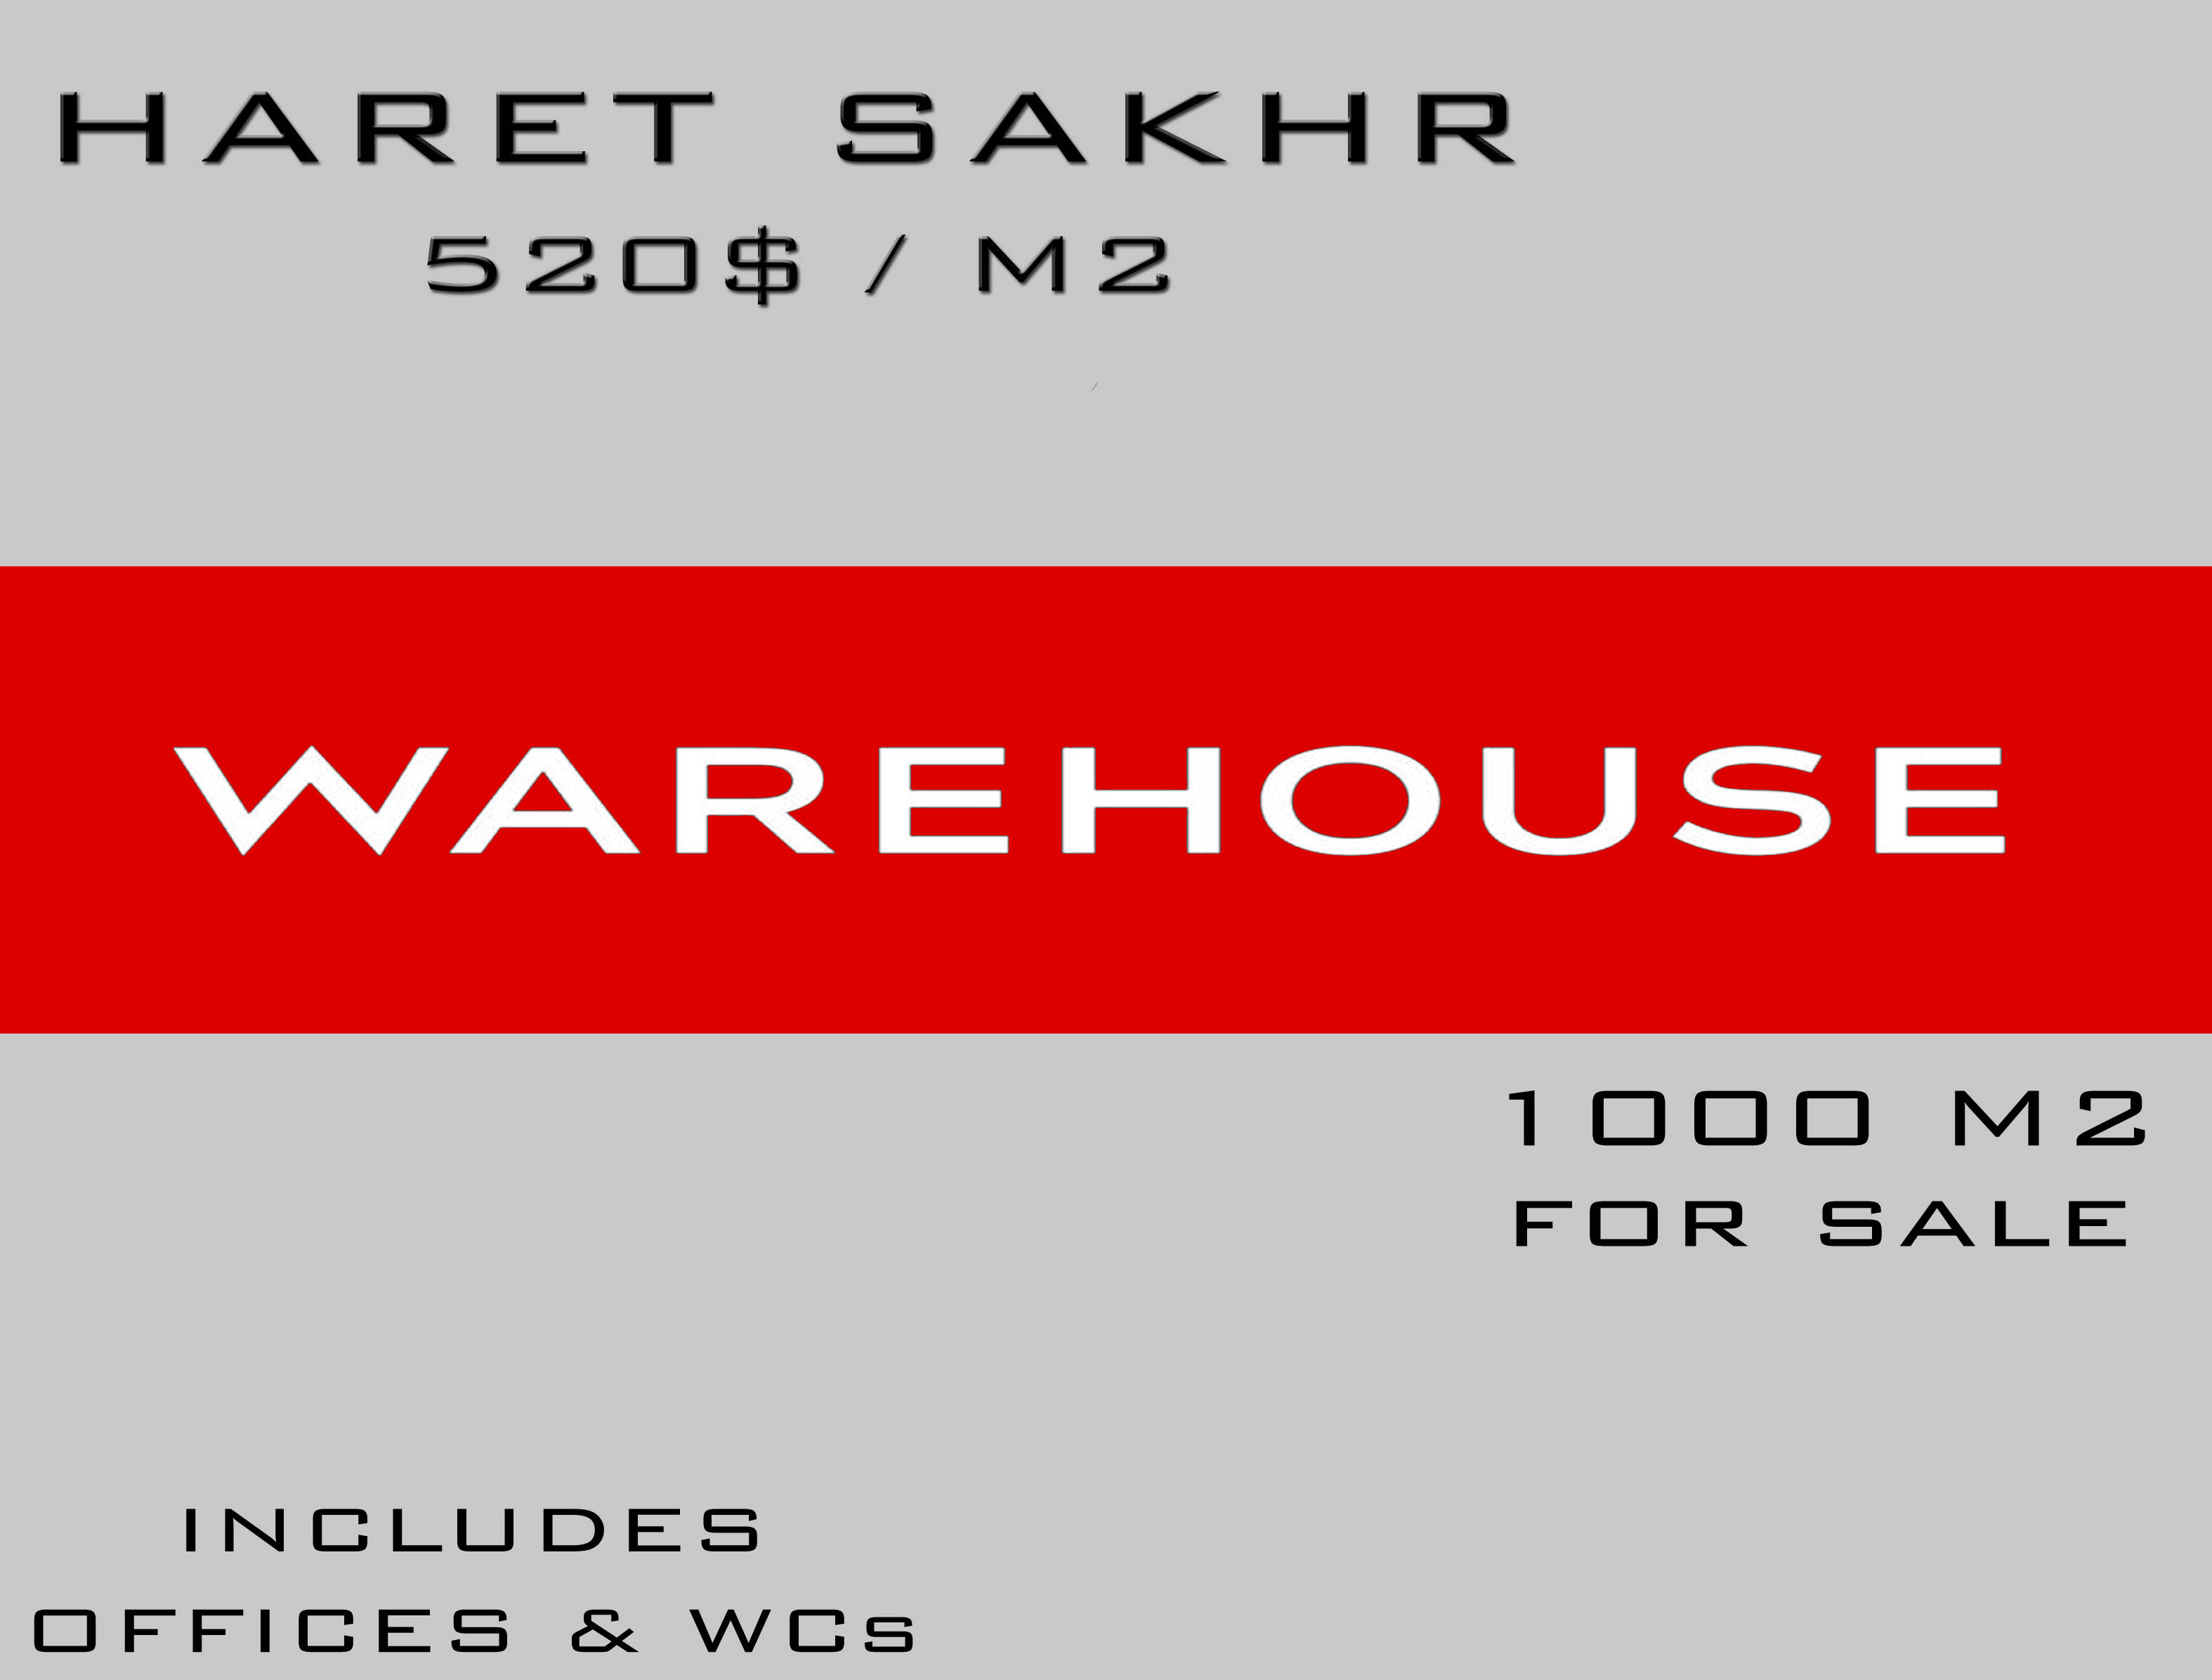 Warehouse, For Sale, Haret Sakhr, Keserwan, Lebanon